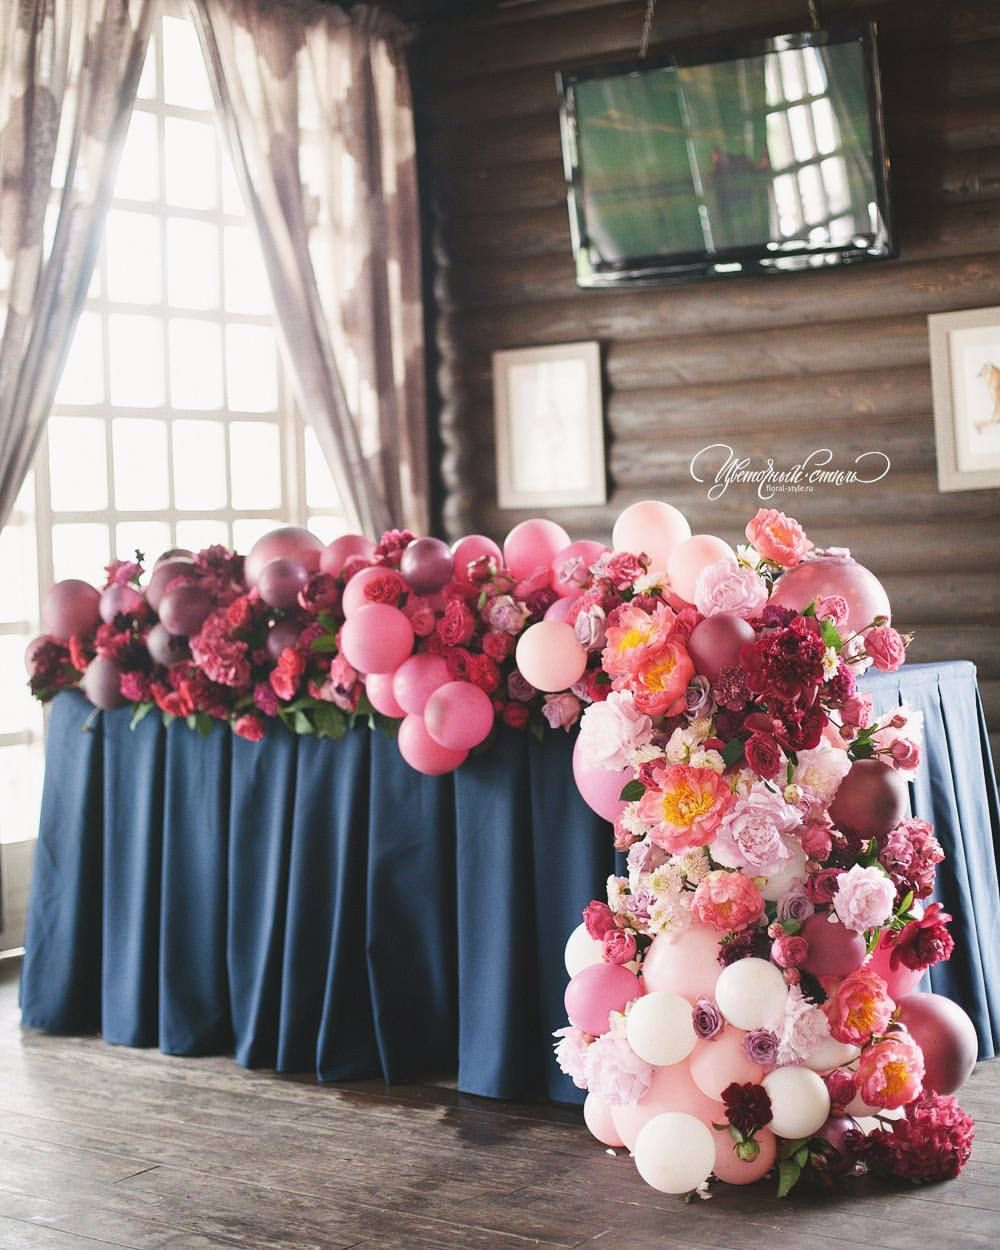 Where can you buy balloon arch kits in delaware - Balloon And Floral Garland Gorgeous Art_petrov